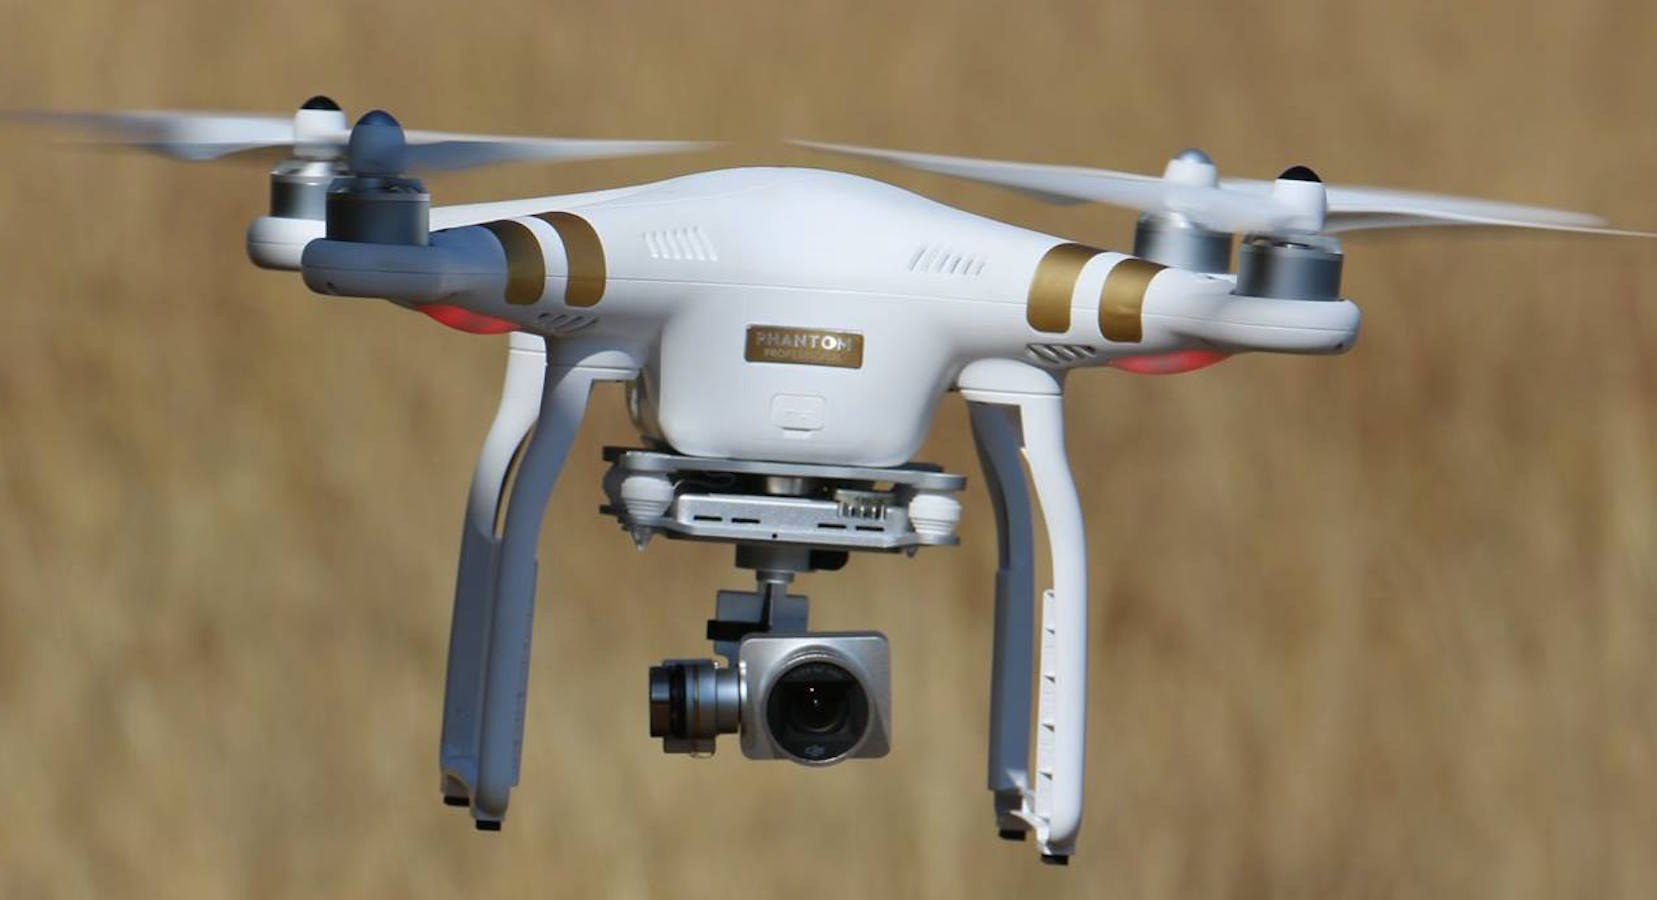 Getting started with drones for aerial photography, this one is a great place to start.